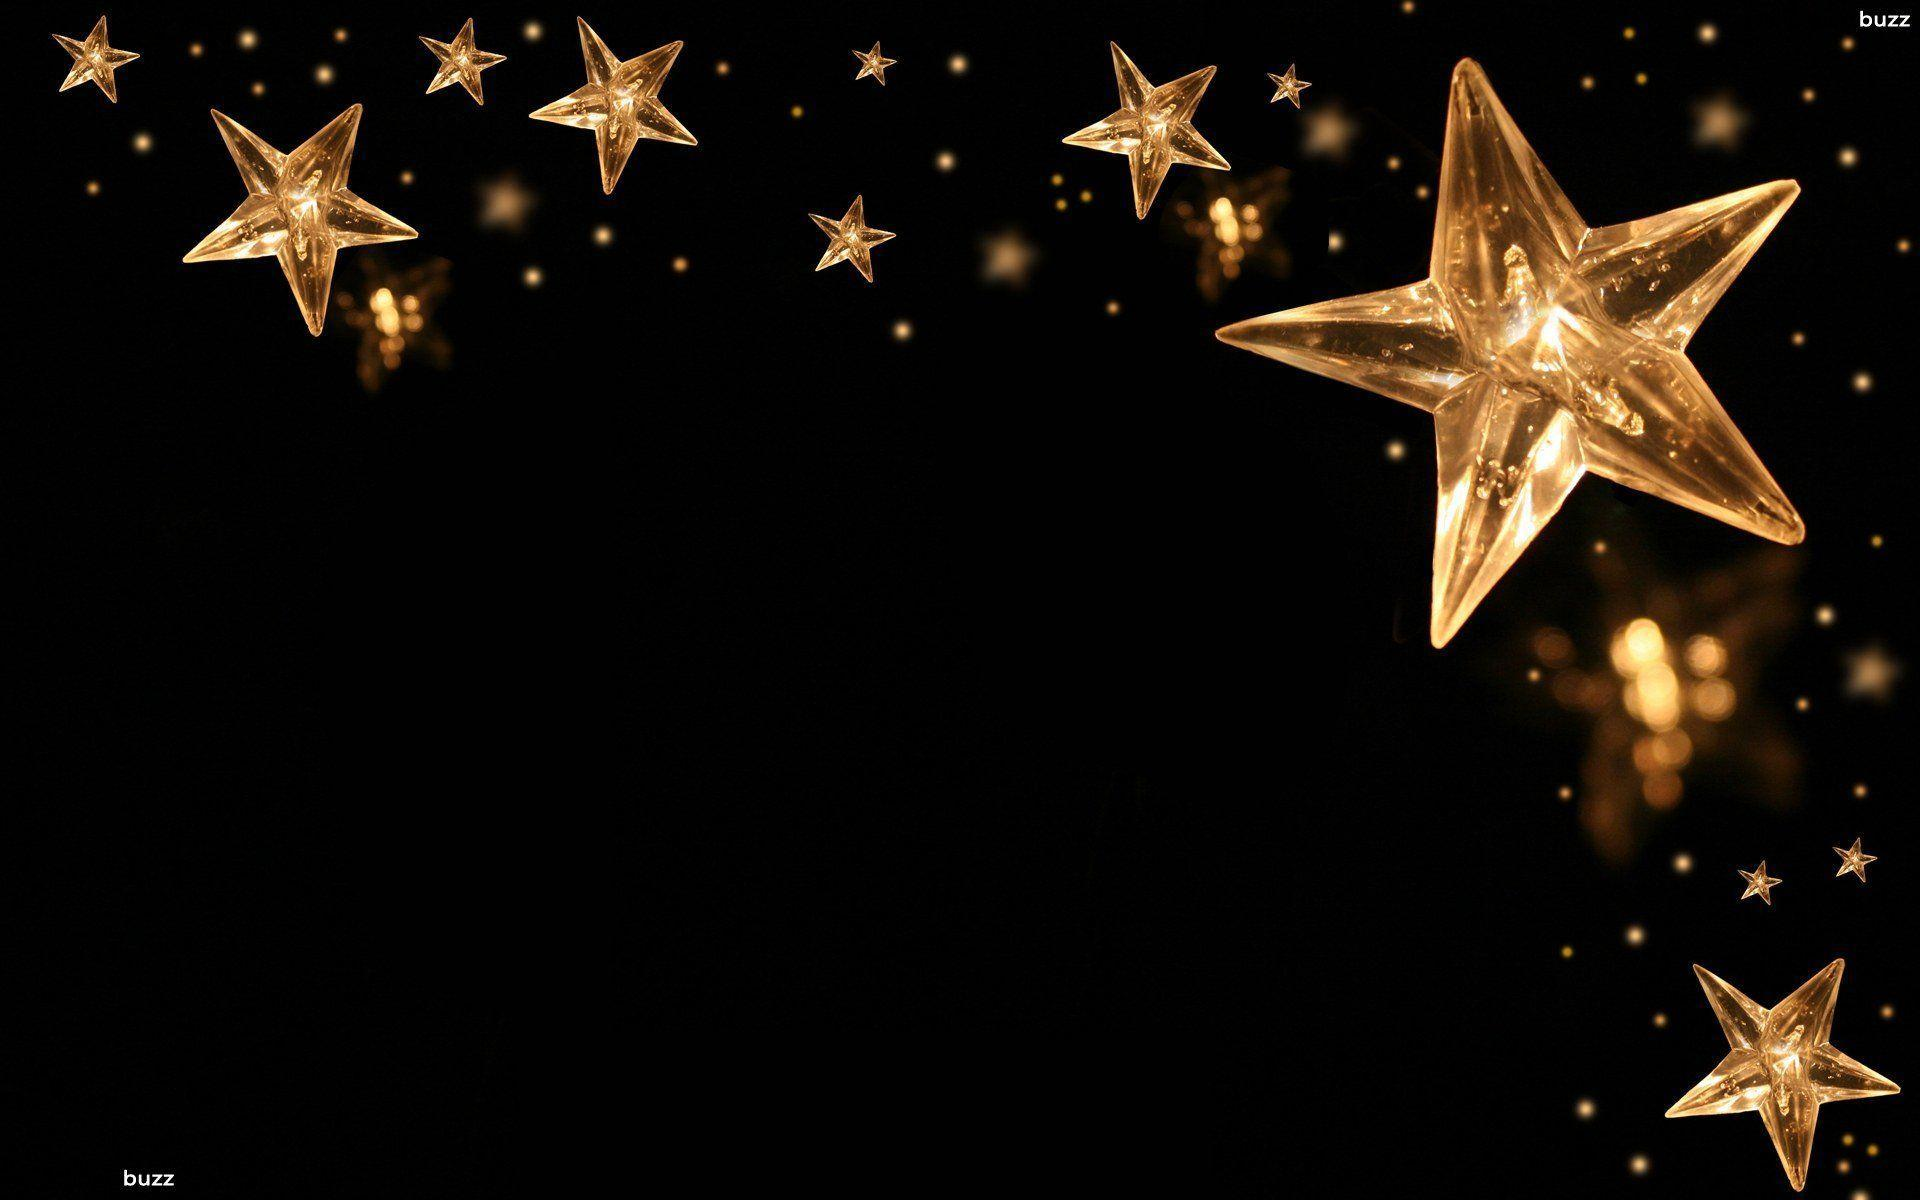 Black and gold backgrounds wallpaper cave - Estrellas de navidad ...